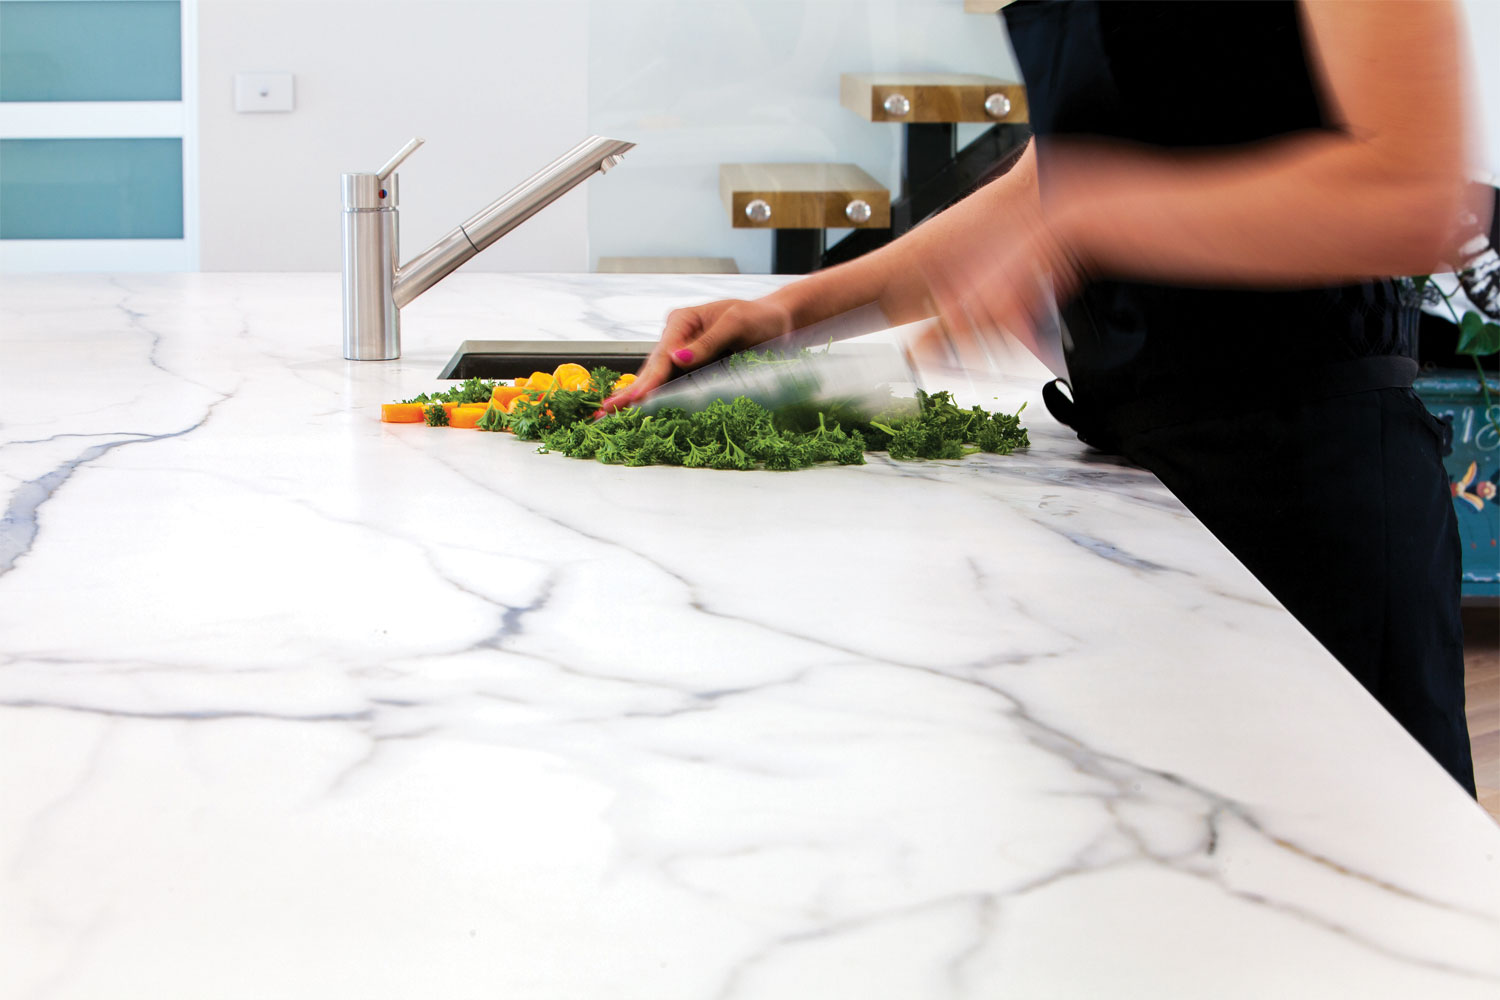 Neolith: an extraordinary surface